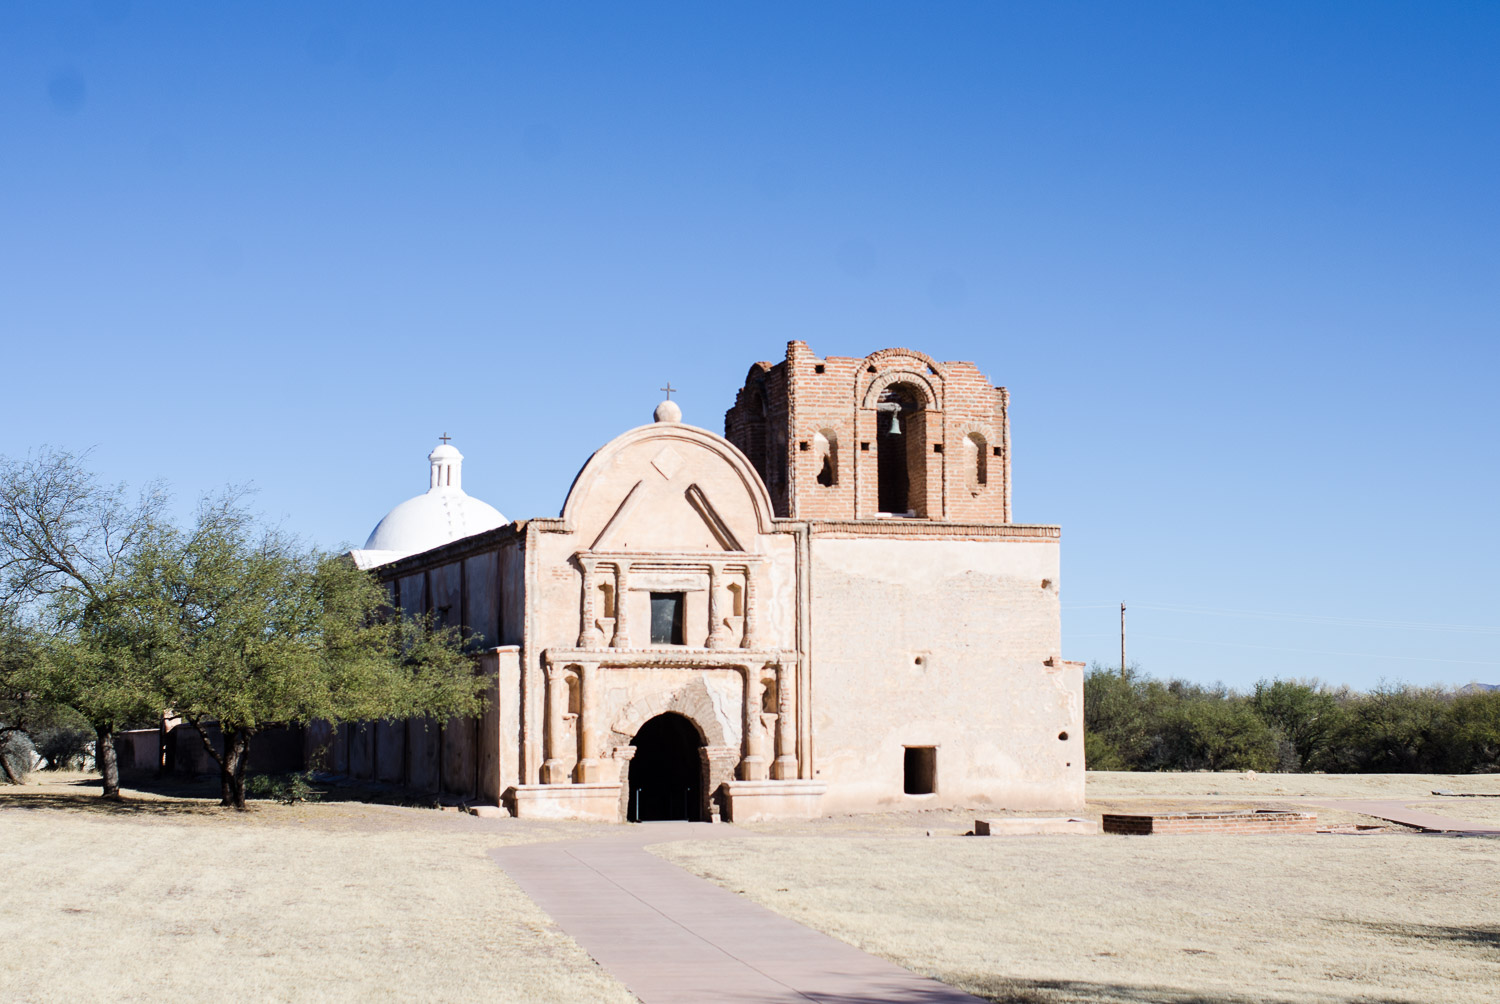 The exterior of the mission church at Tumacácori; Photo by Mike Portt